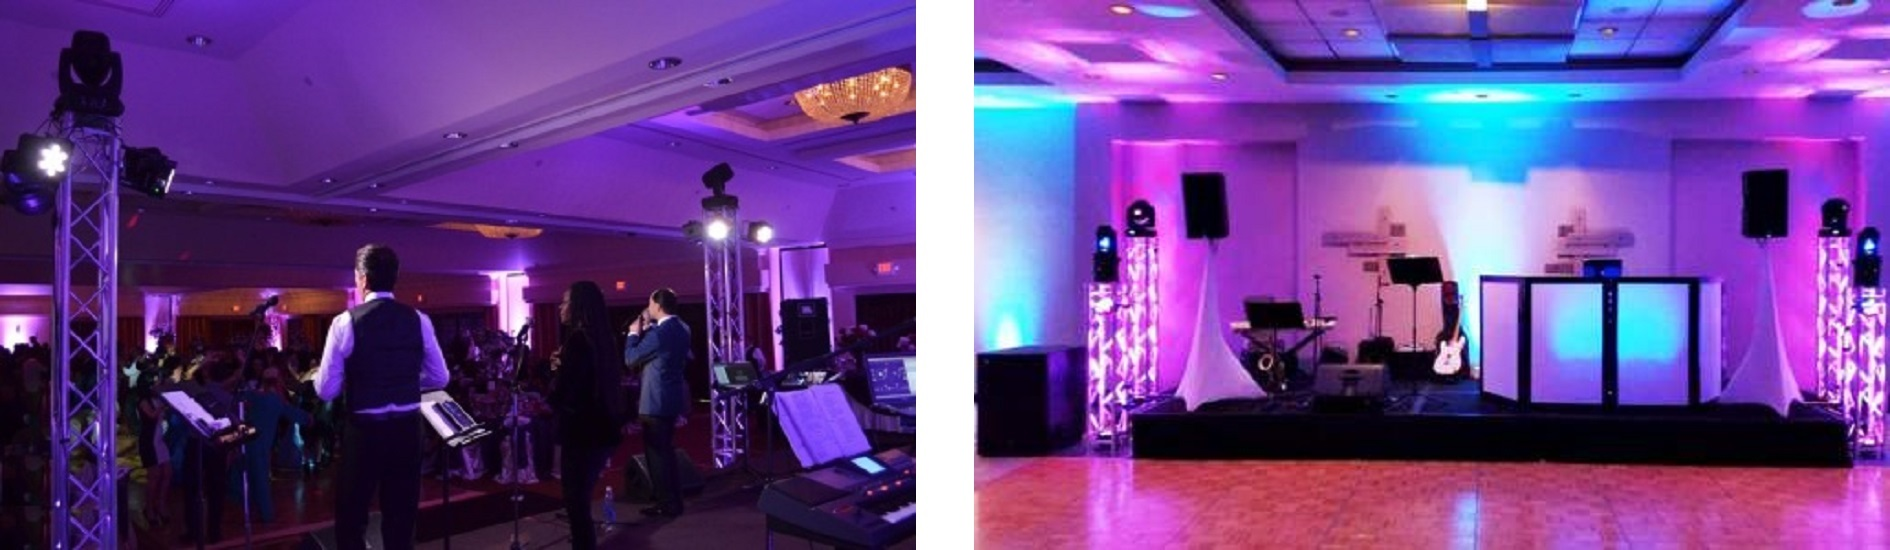 Houston Wedding DJ, DJs in Houston, Houston Stage Lighting Decor, Lighting Truss, Band Lighting, DMX, Spot Lighting, Flood Lighting, Moving Heads, Scanners for Houston Wedding, Event, Concert, Live Band, Awesome Lighting Decor, Awesome Music Entertainment, Awesome Event Pros, AME DJs, Sonido DJ Sammy De Houston